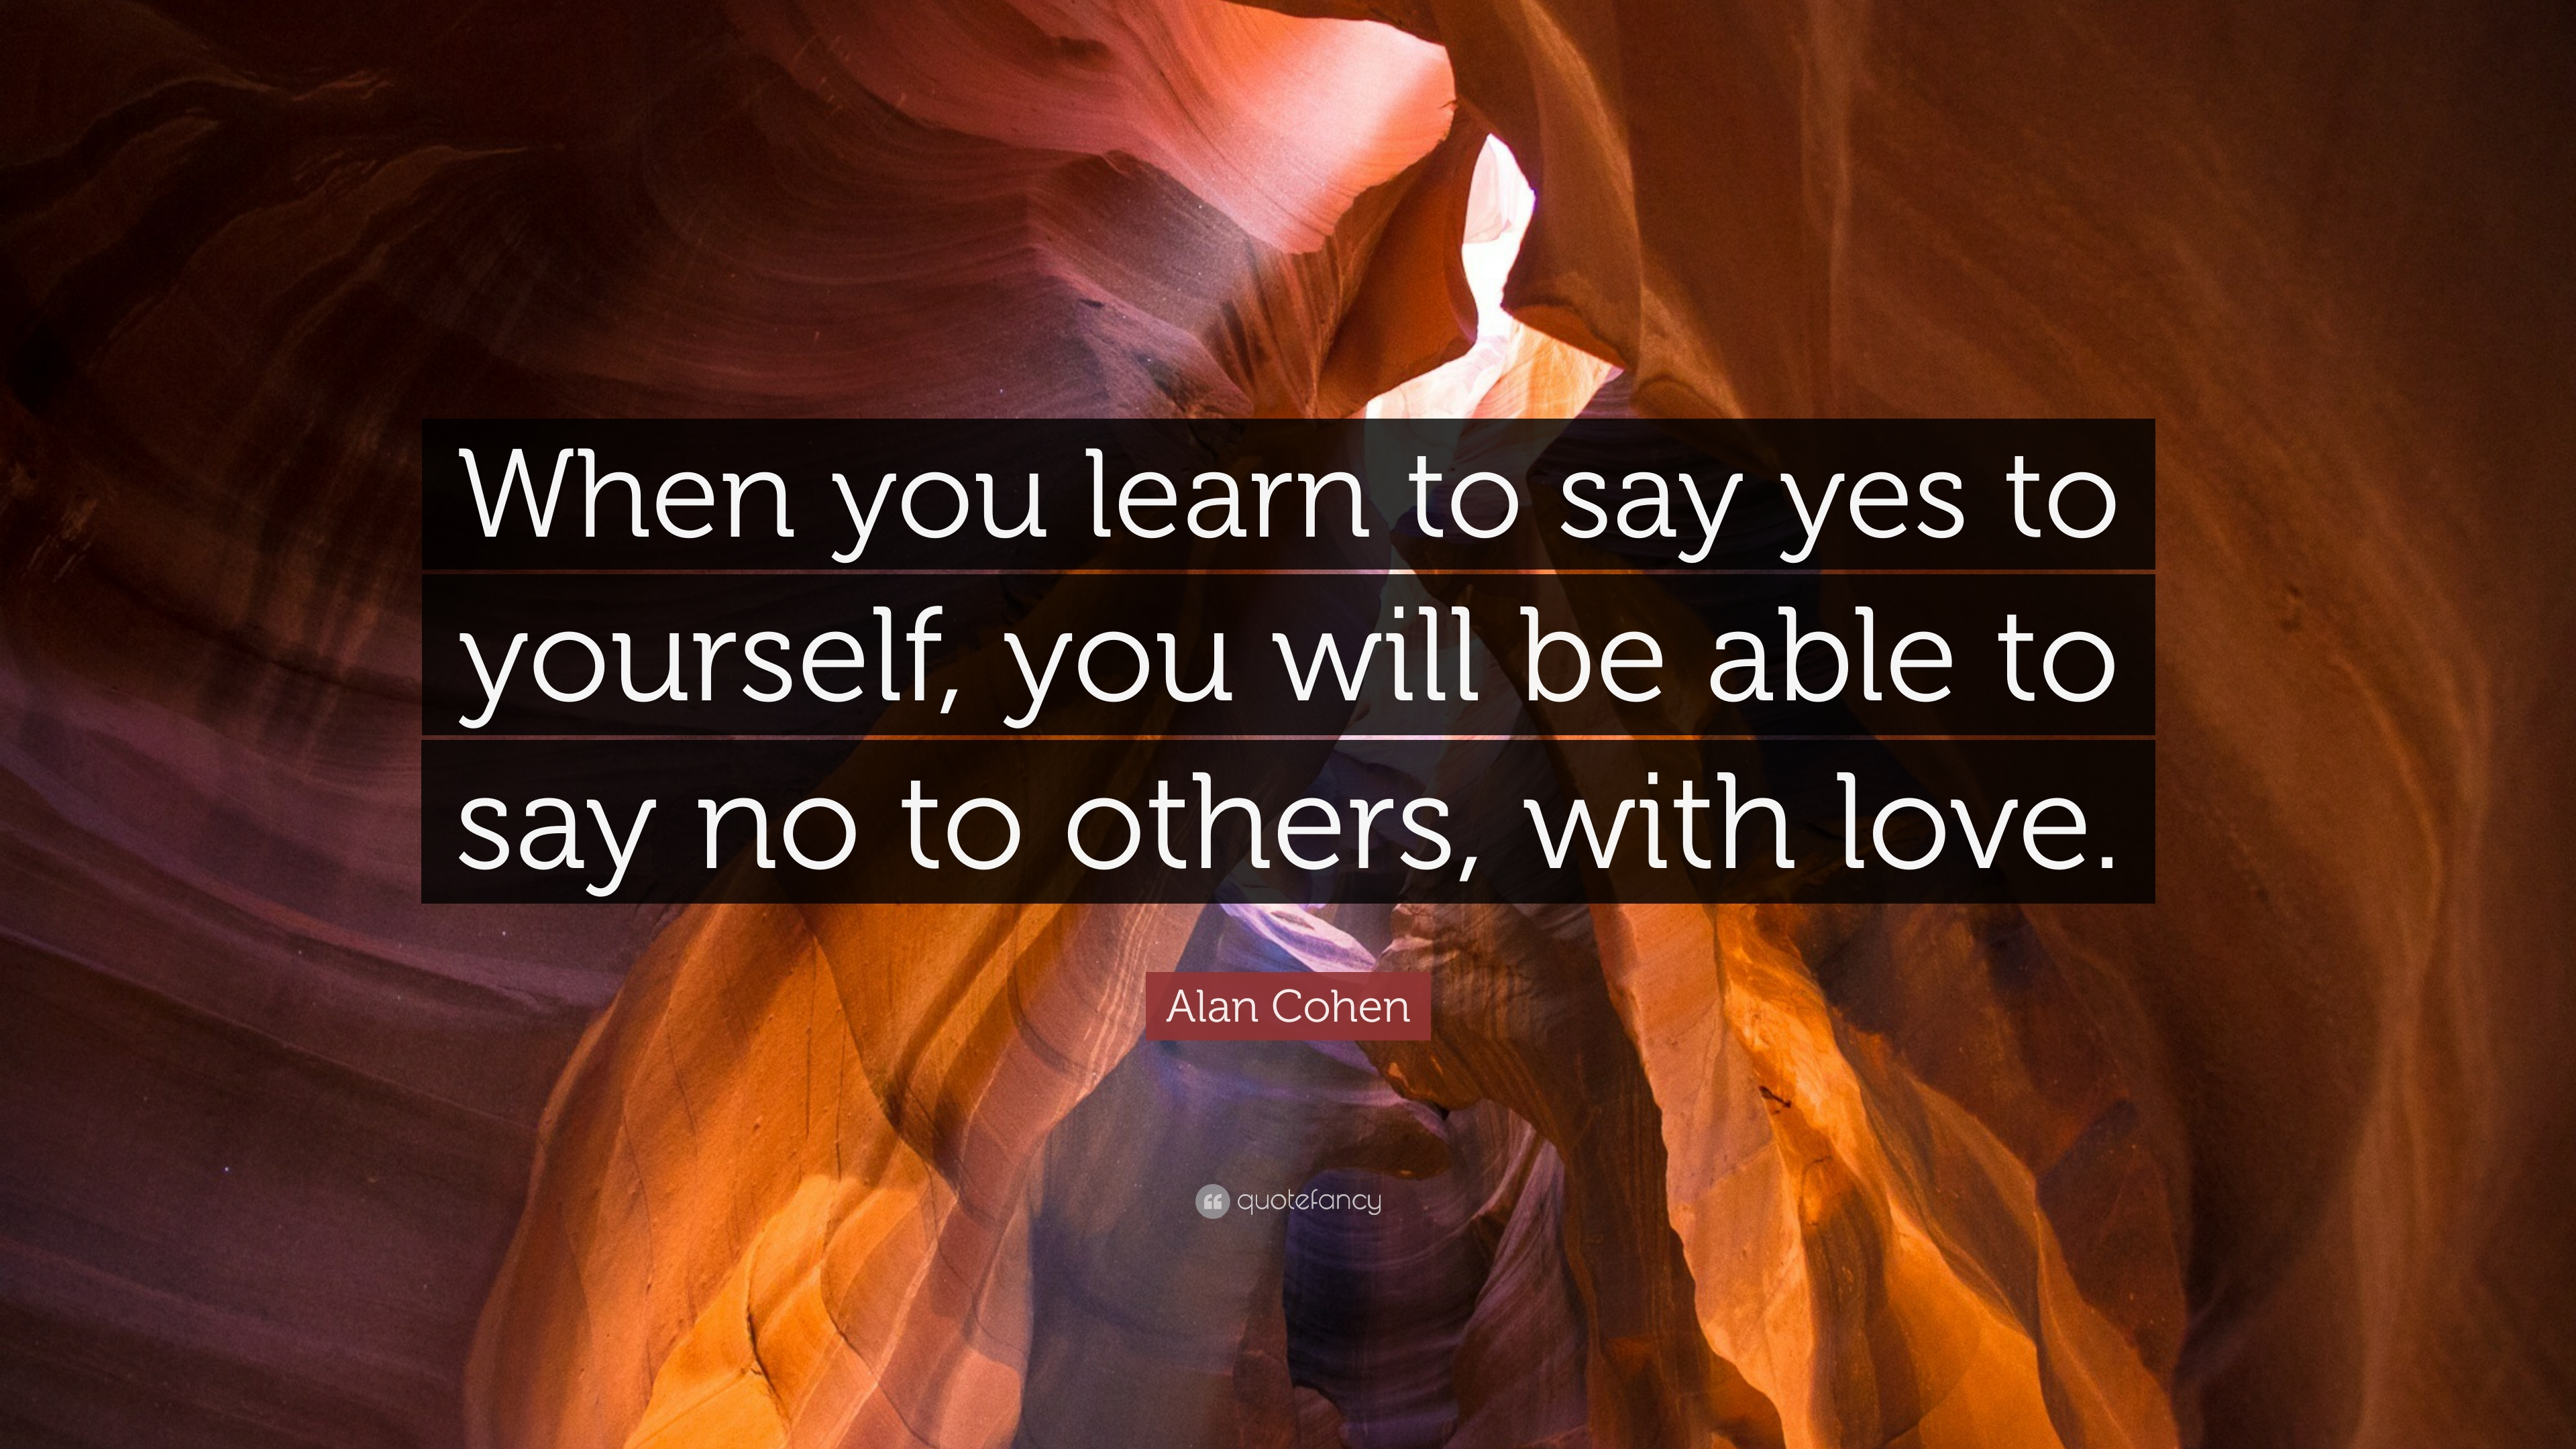 alan cohen quote when you learn to say yes to yourself you will